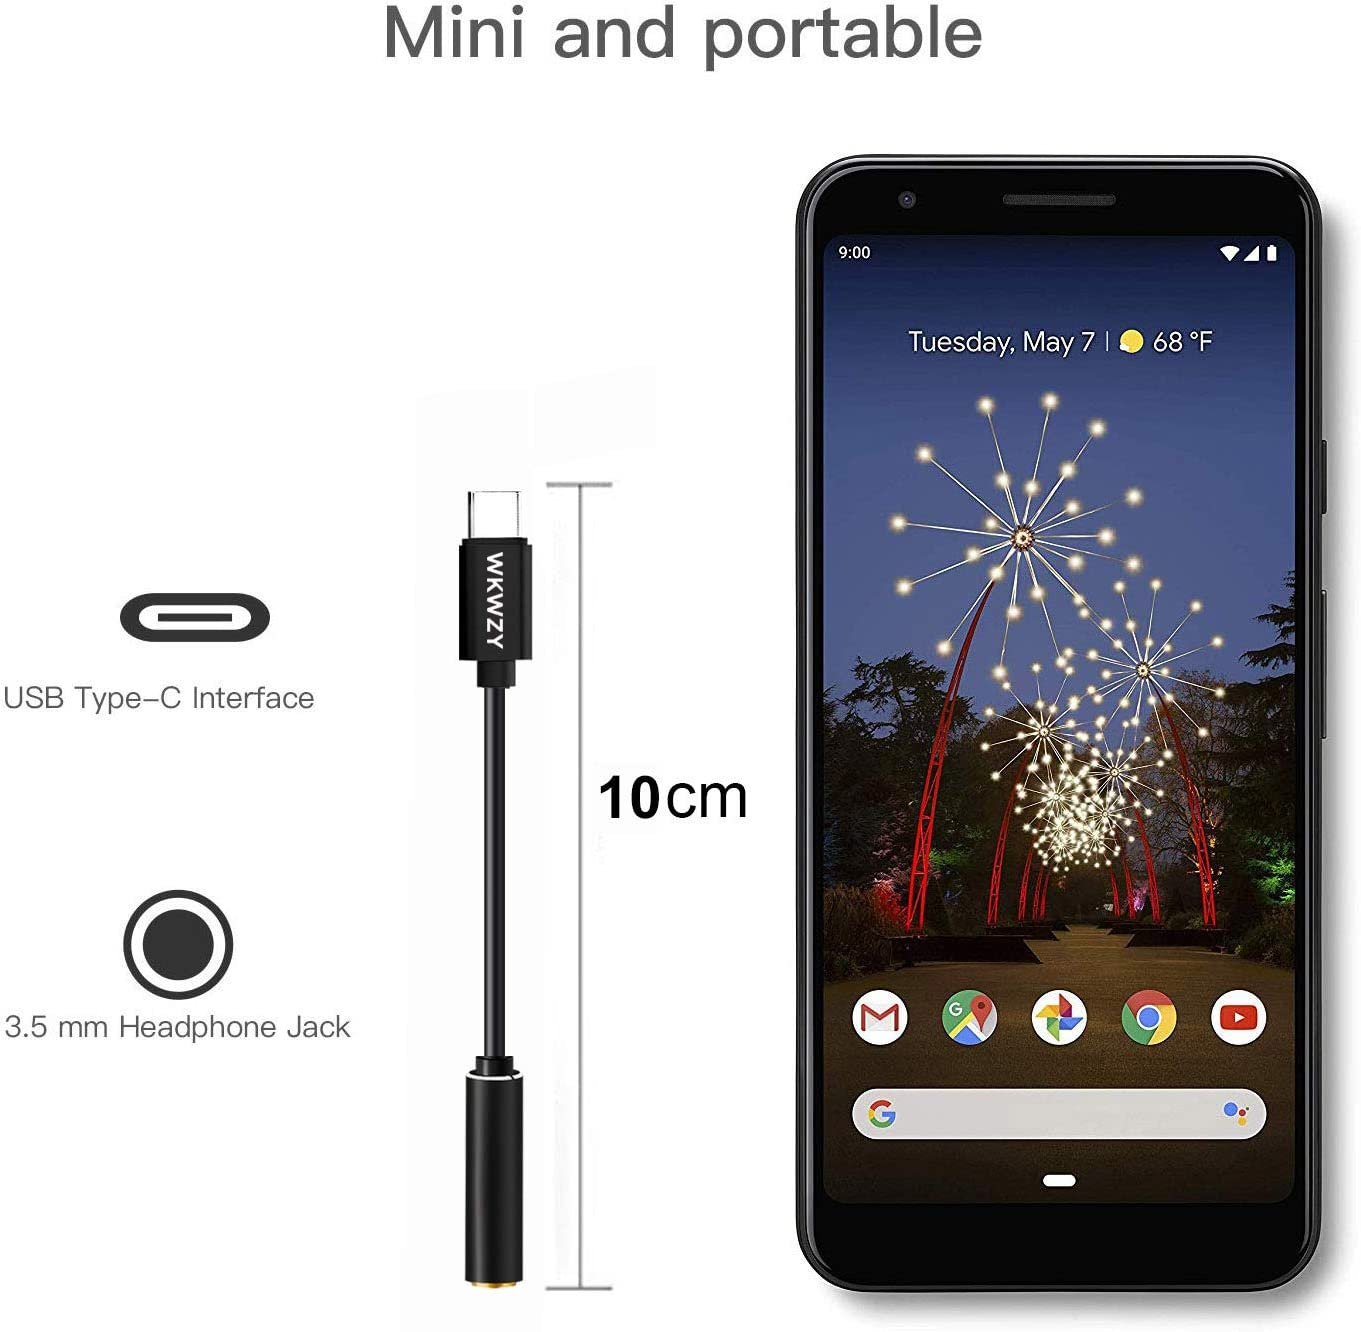 USB C Headphone Adapter Pixel Dongle USB C to 3.5 mm Headphone Jack Adapter Compatible with Pixel 2//3//2XL//3XL,Oneplus 7 pro//6T,Moto Z,Huawei Mate10 Pro//P20//Mate20